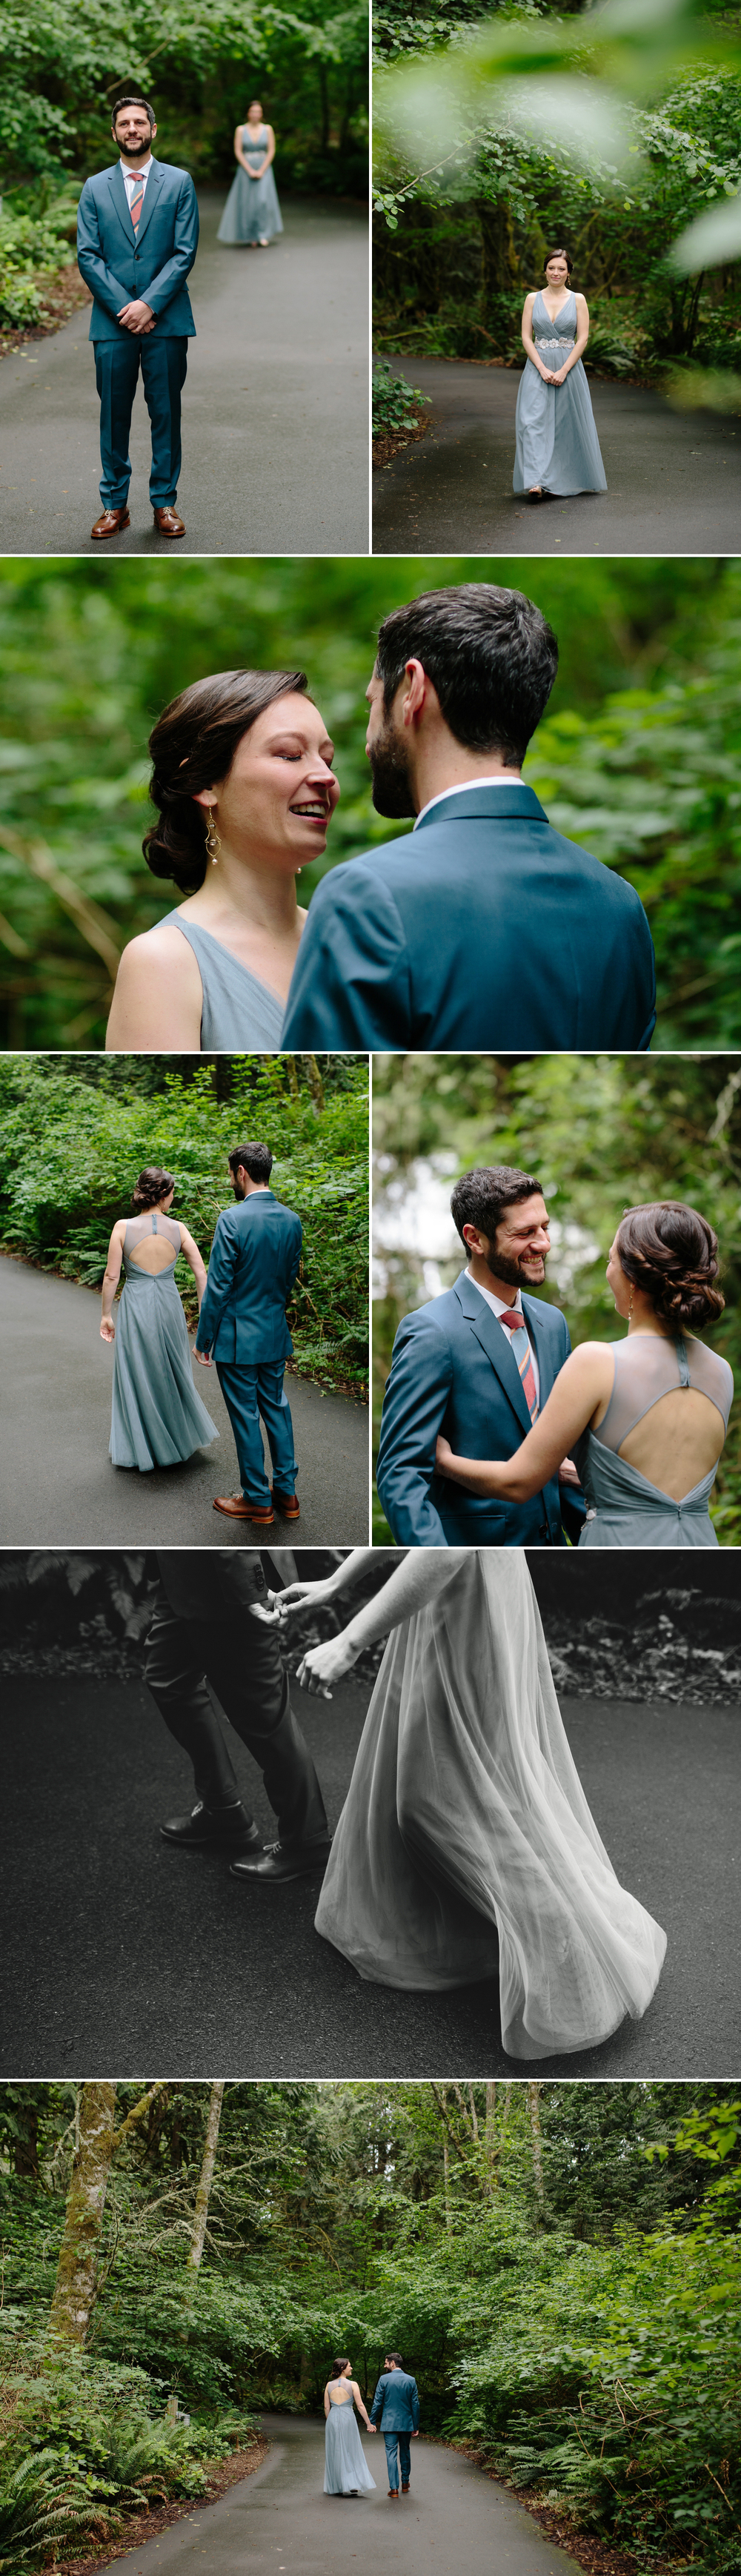 cameron-zegers-wedding-photographer-seattle-islandwood-bainbridge-island-3.jpg